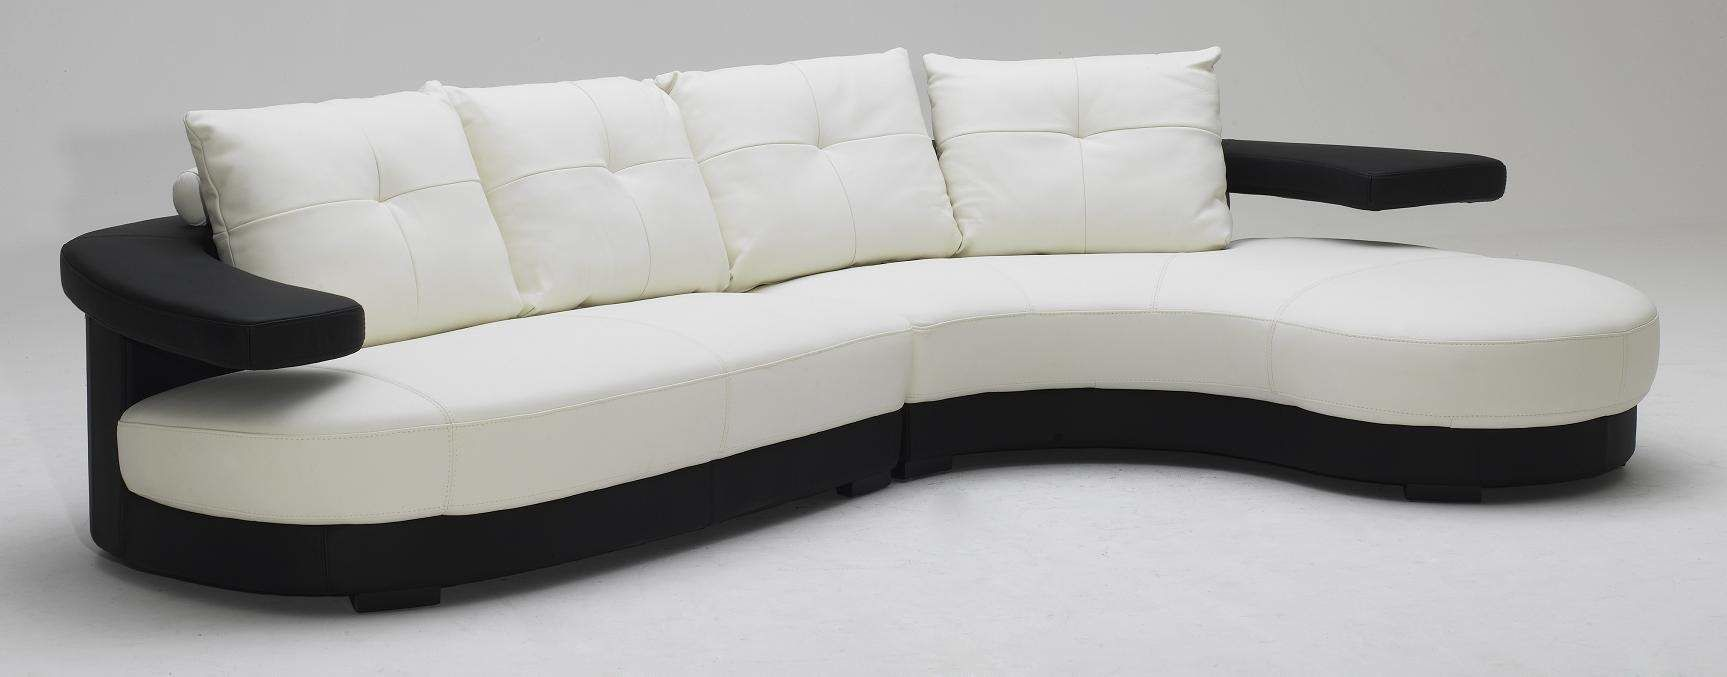 latest high back sectional sofas gallery-Latest High Back Sectional sofas Décor